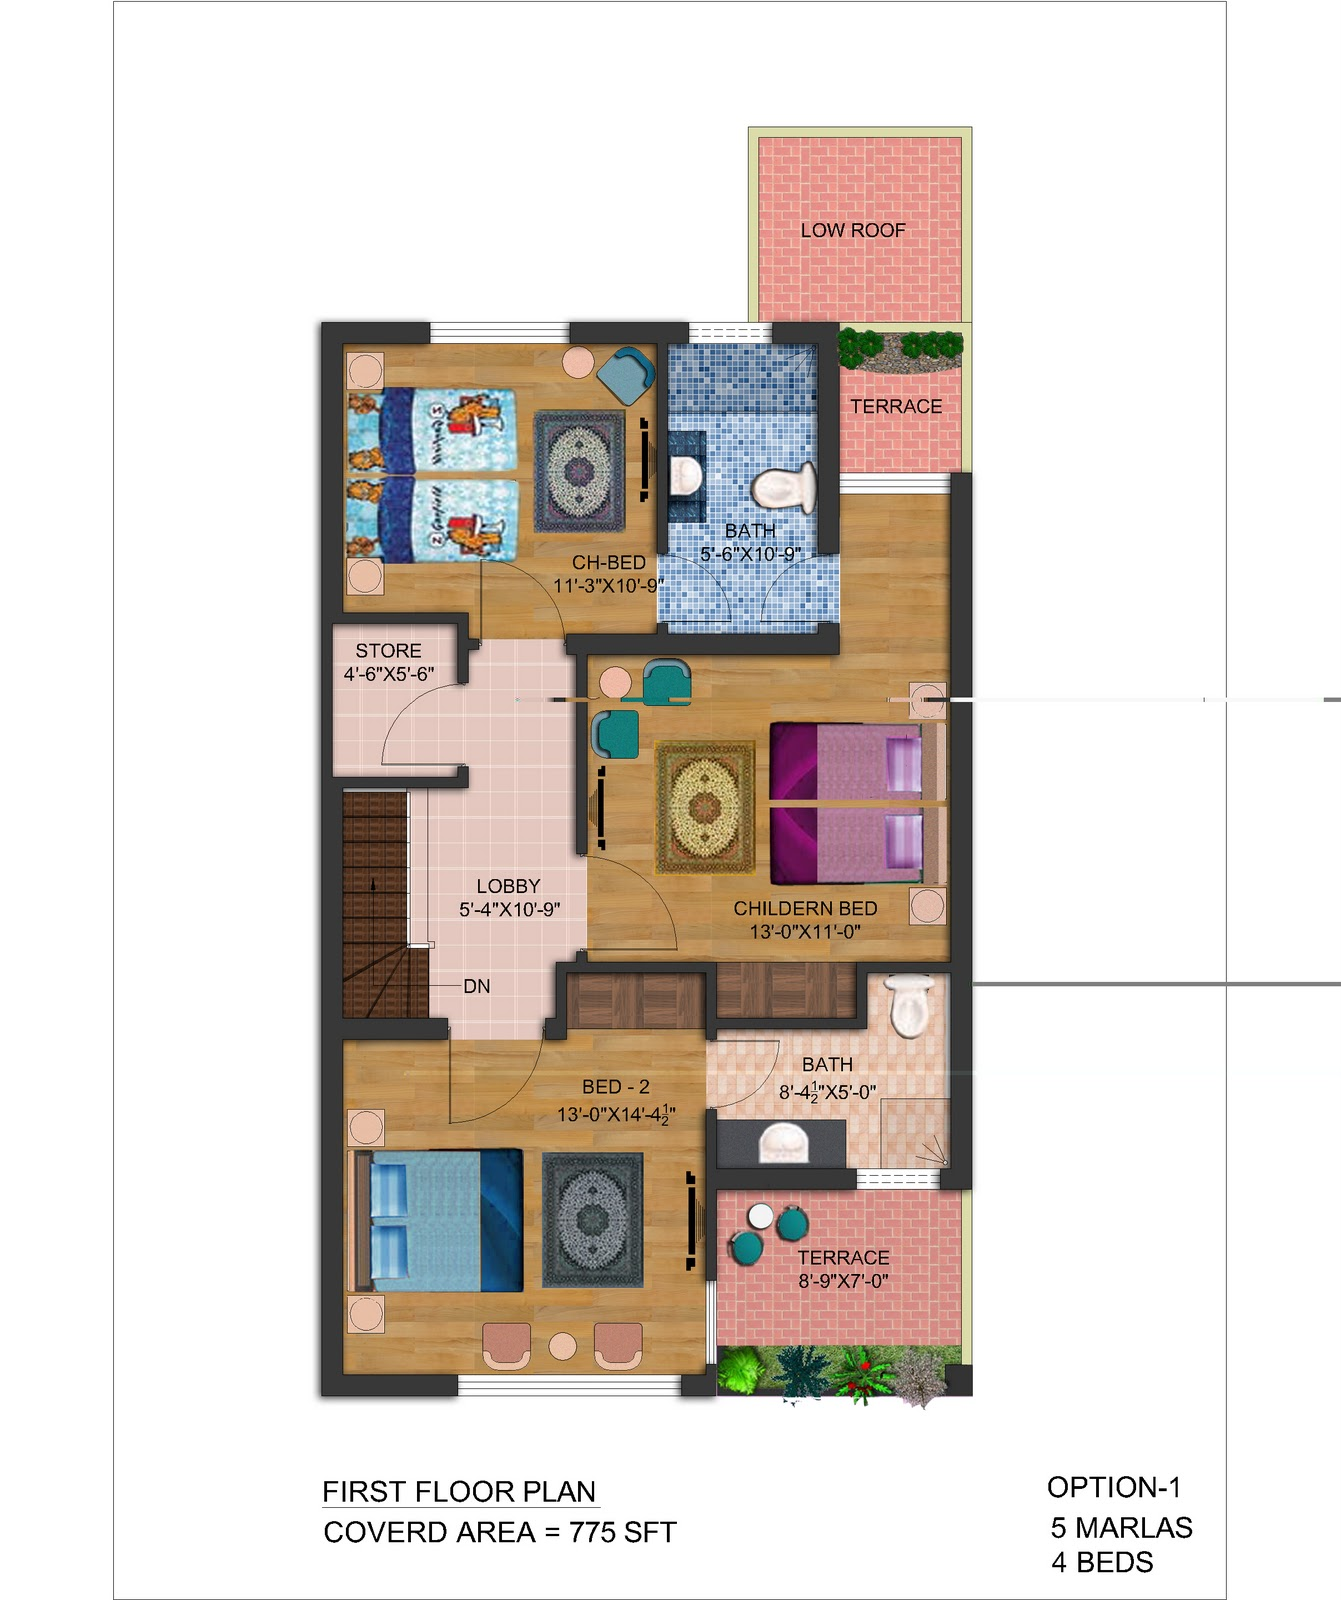 5 Marla House Floor Plan http://frontelevation.blogspot.com/2011/11/5-marla-front-elevation-plan.html